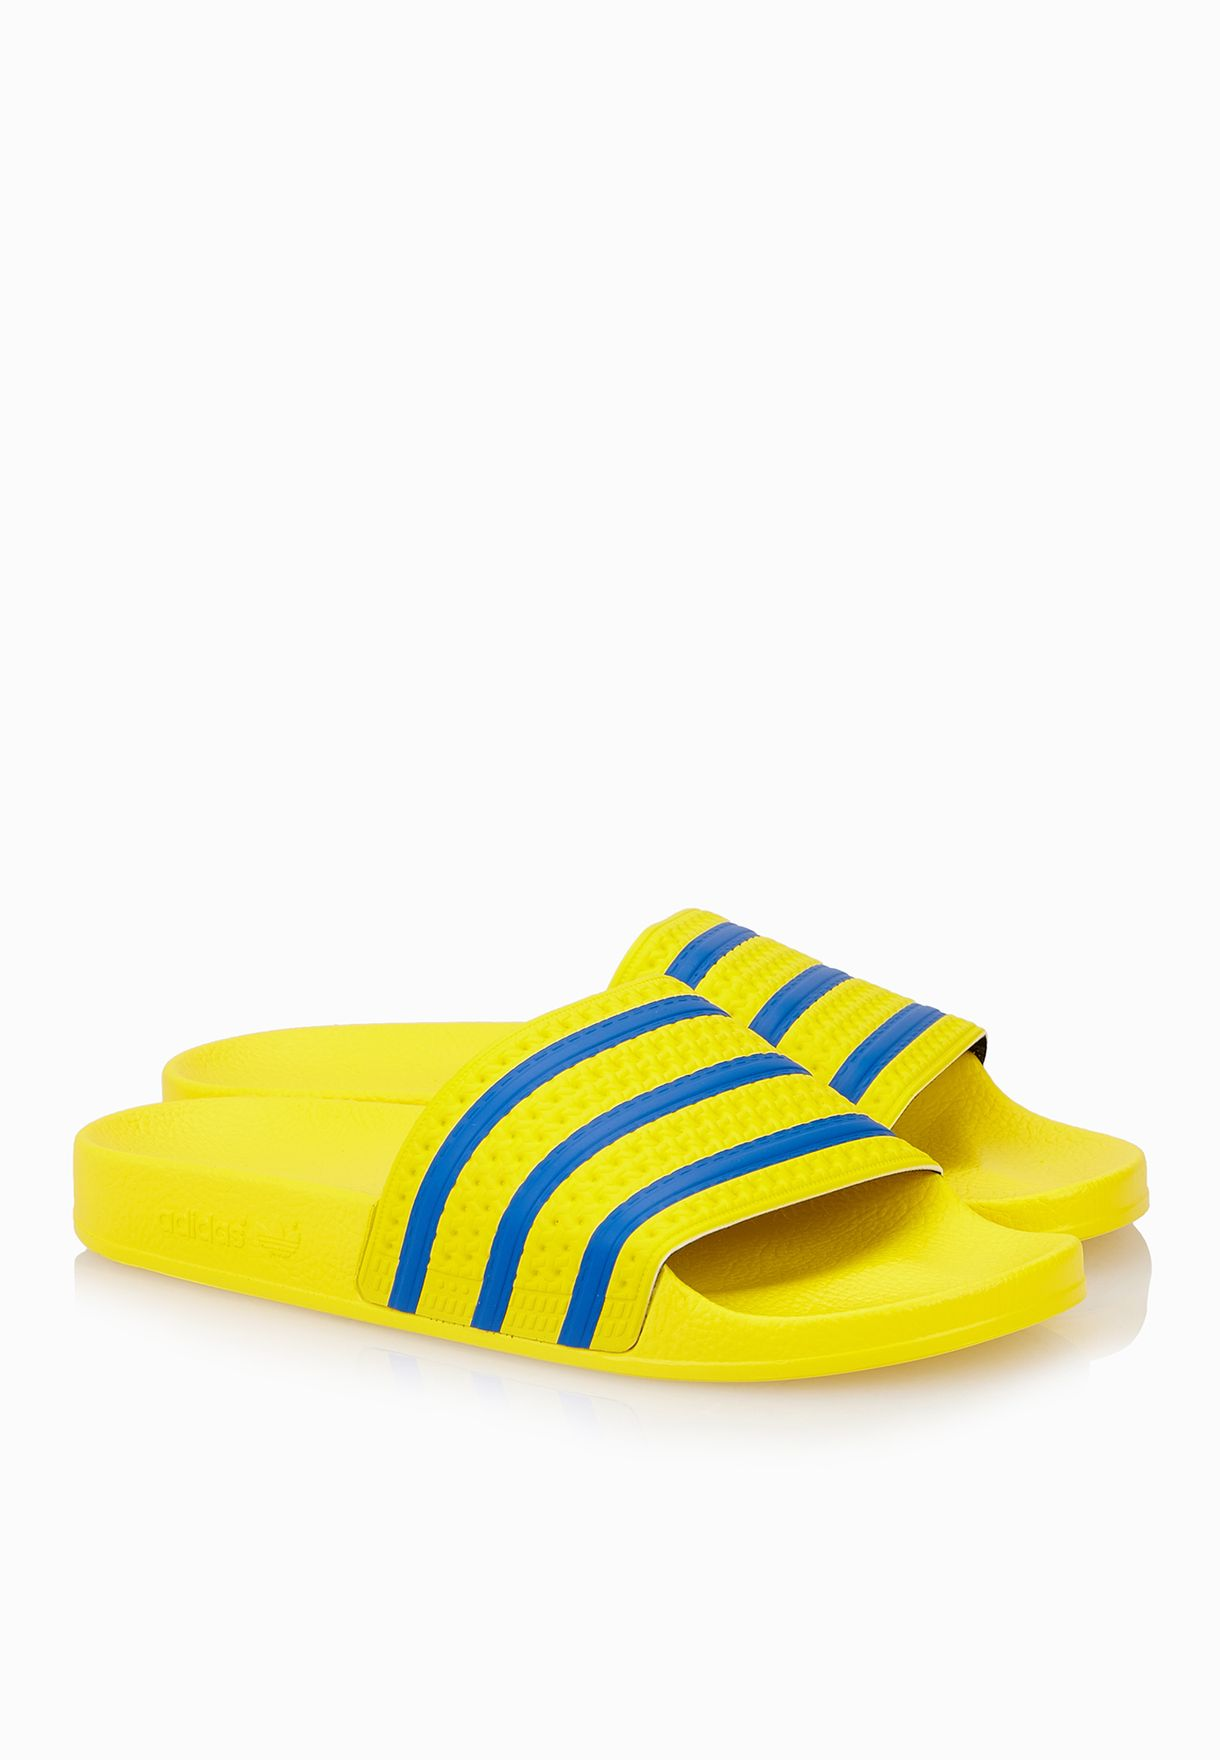 5a7331e147e5 Shop adidas Originals yellow Adilette S78677 for Men in UAE ...